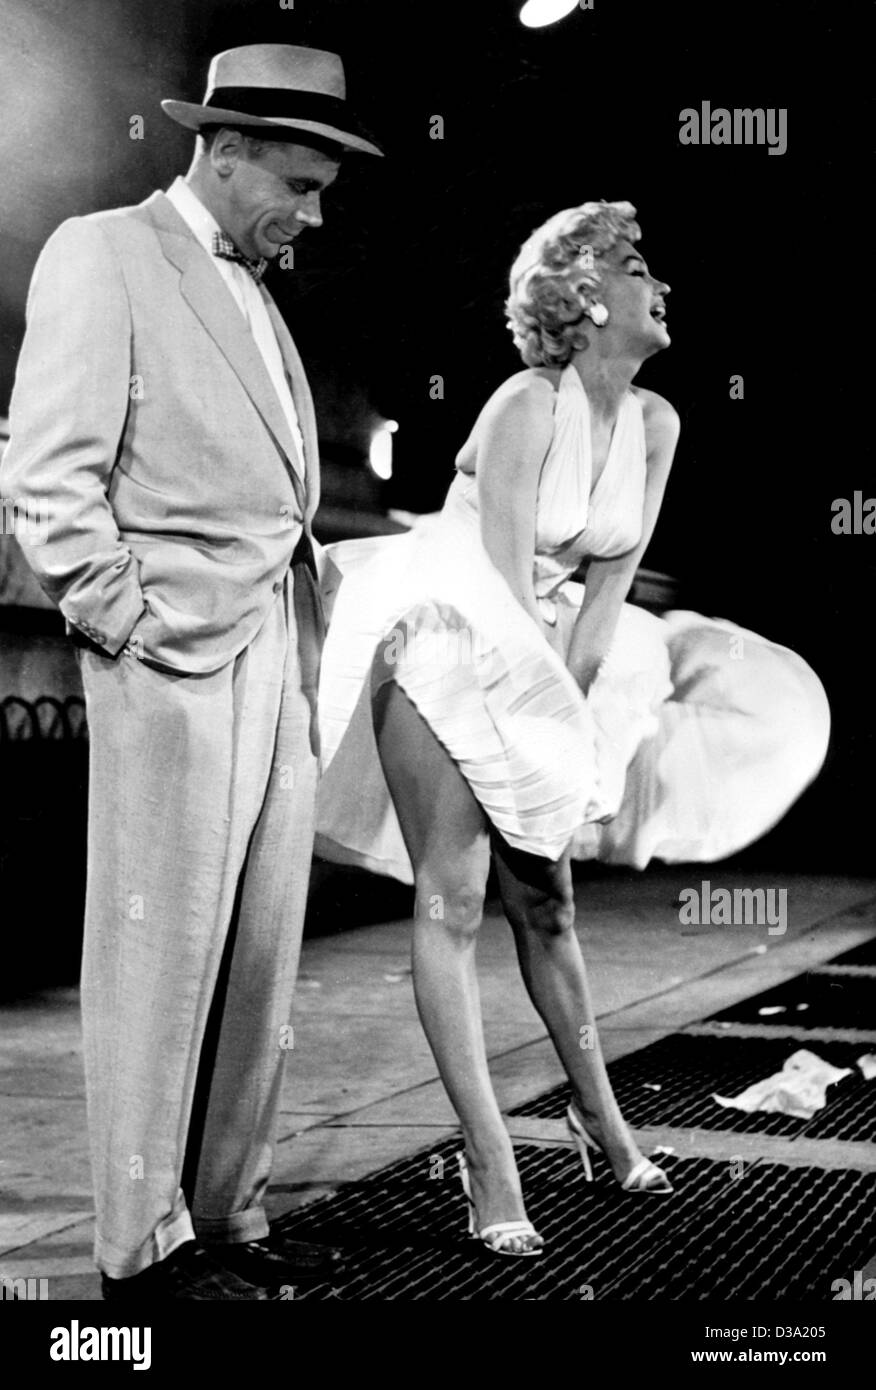 (dpa) - Marilyn Monroe posing with her skirt on a subway air-shaft, with her film partner Tom Ewell standing next - Stock Image